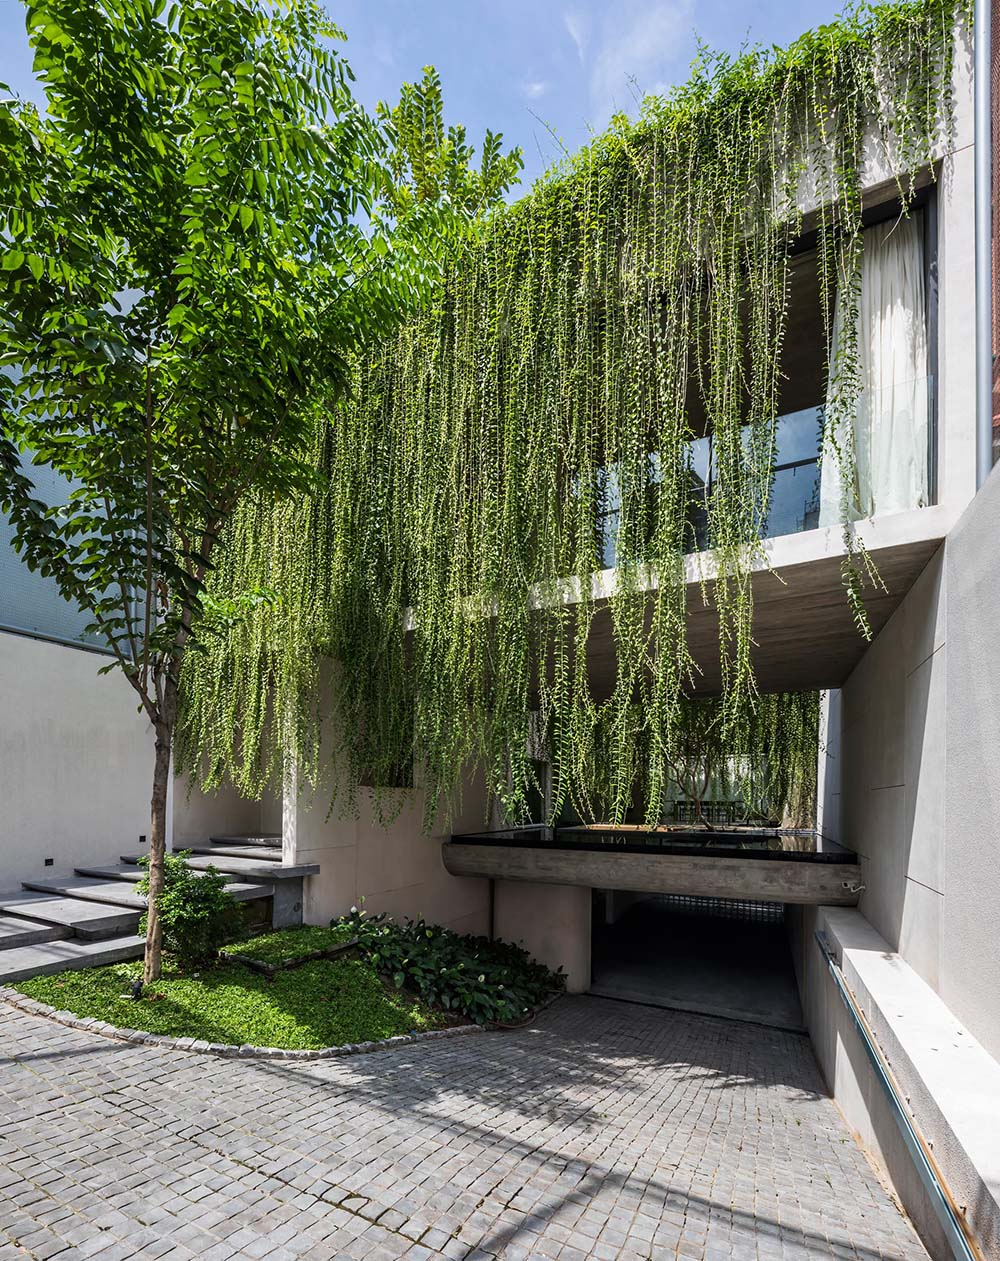 A modern house with vines that hang over the facade.